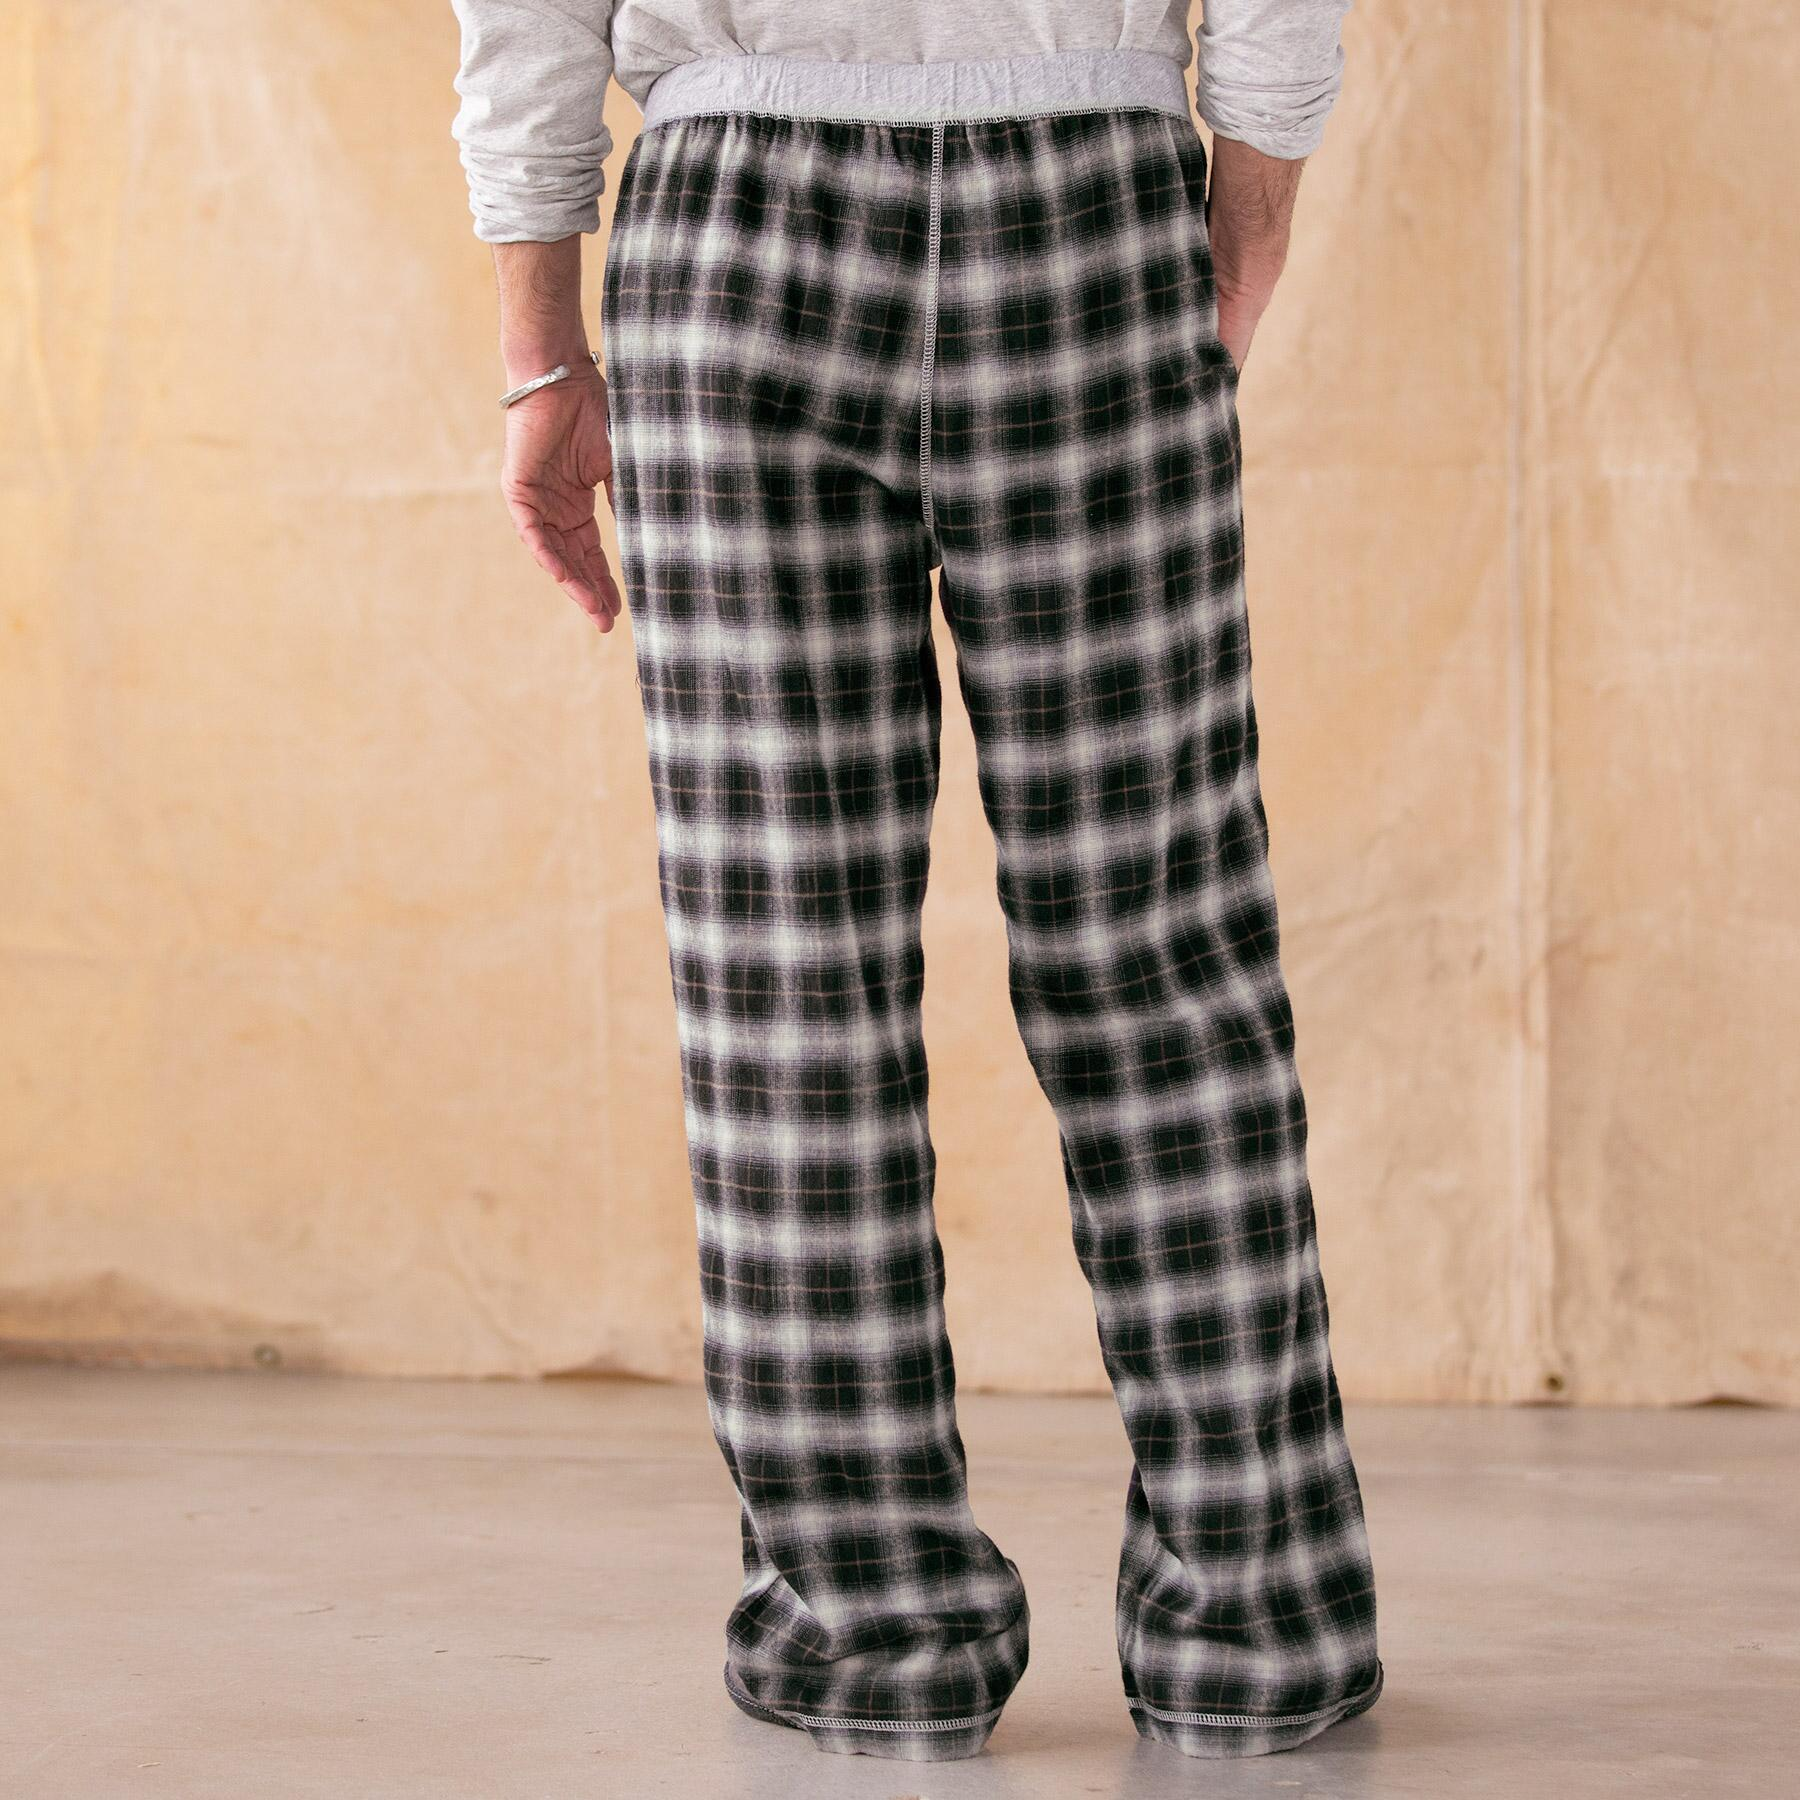 HEARKEN BACK LOUNGE PANTS-BLACK: View 2